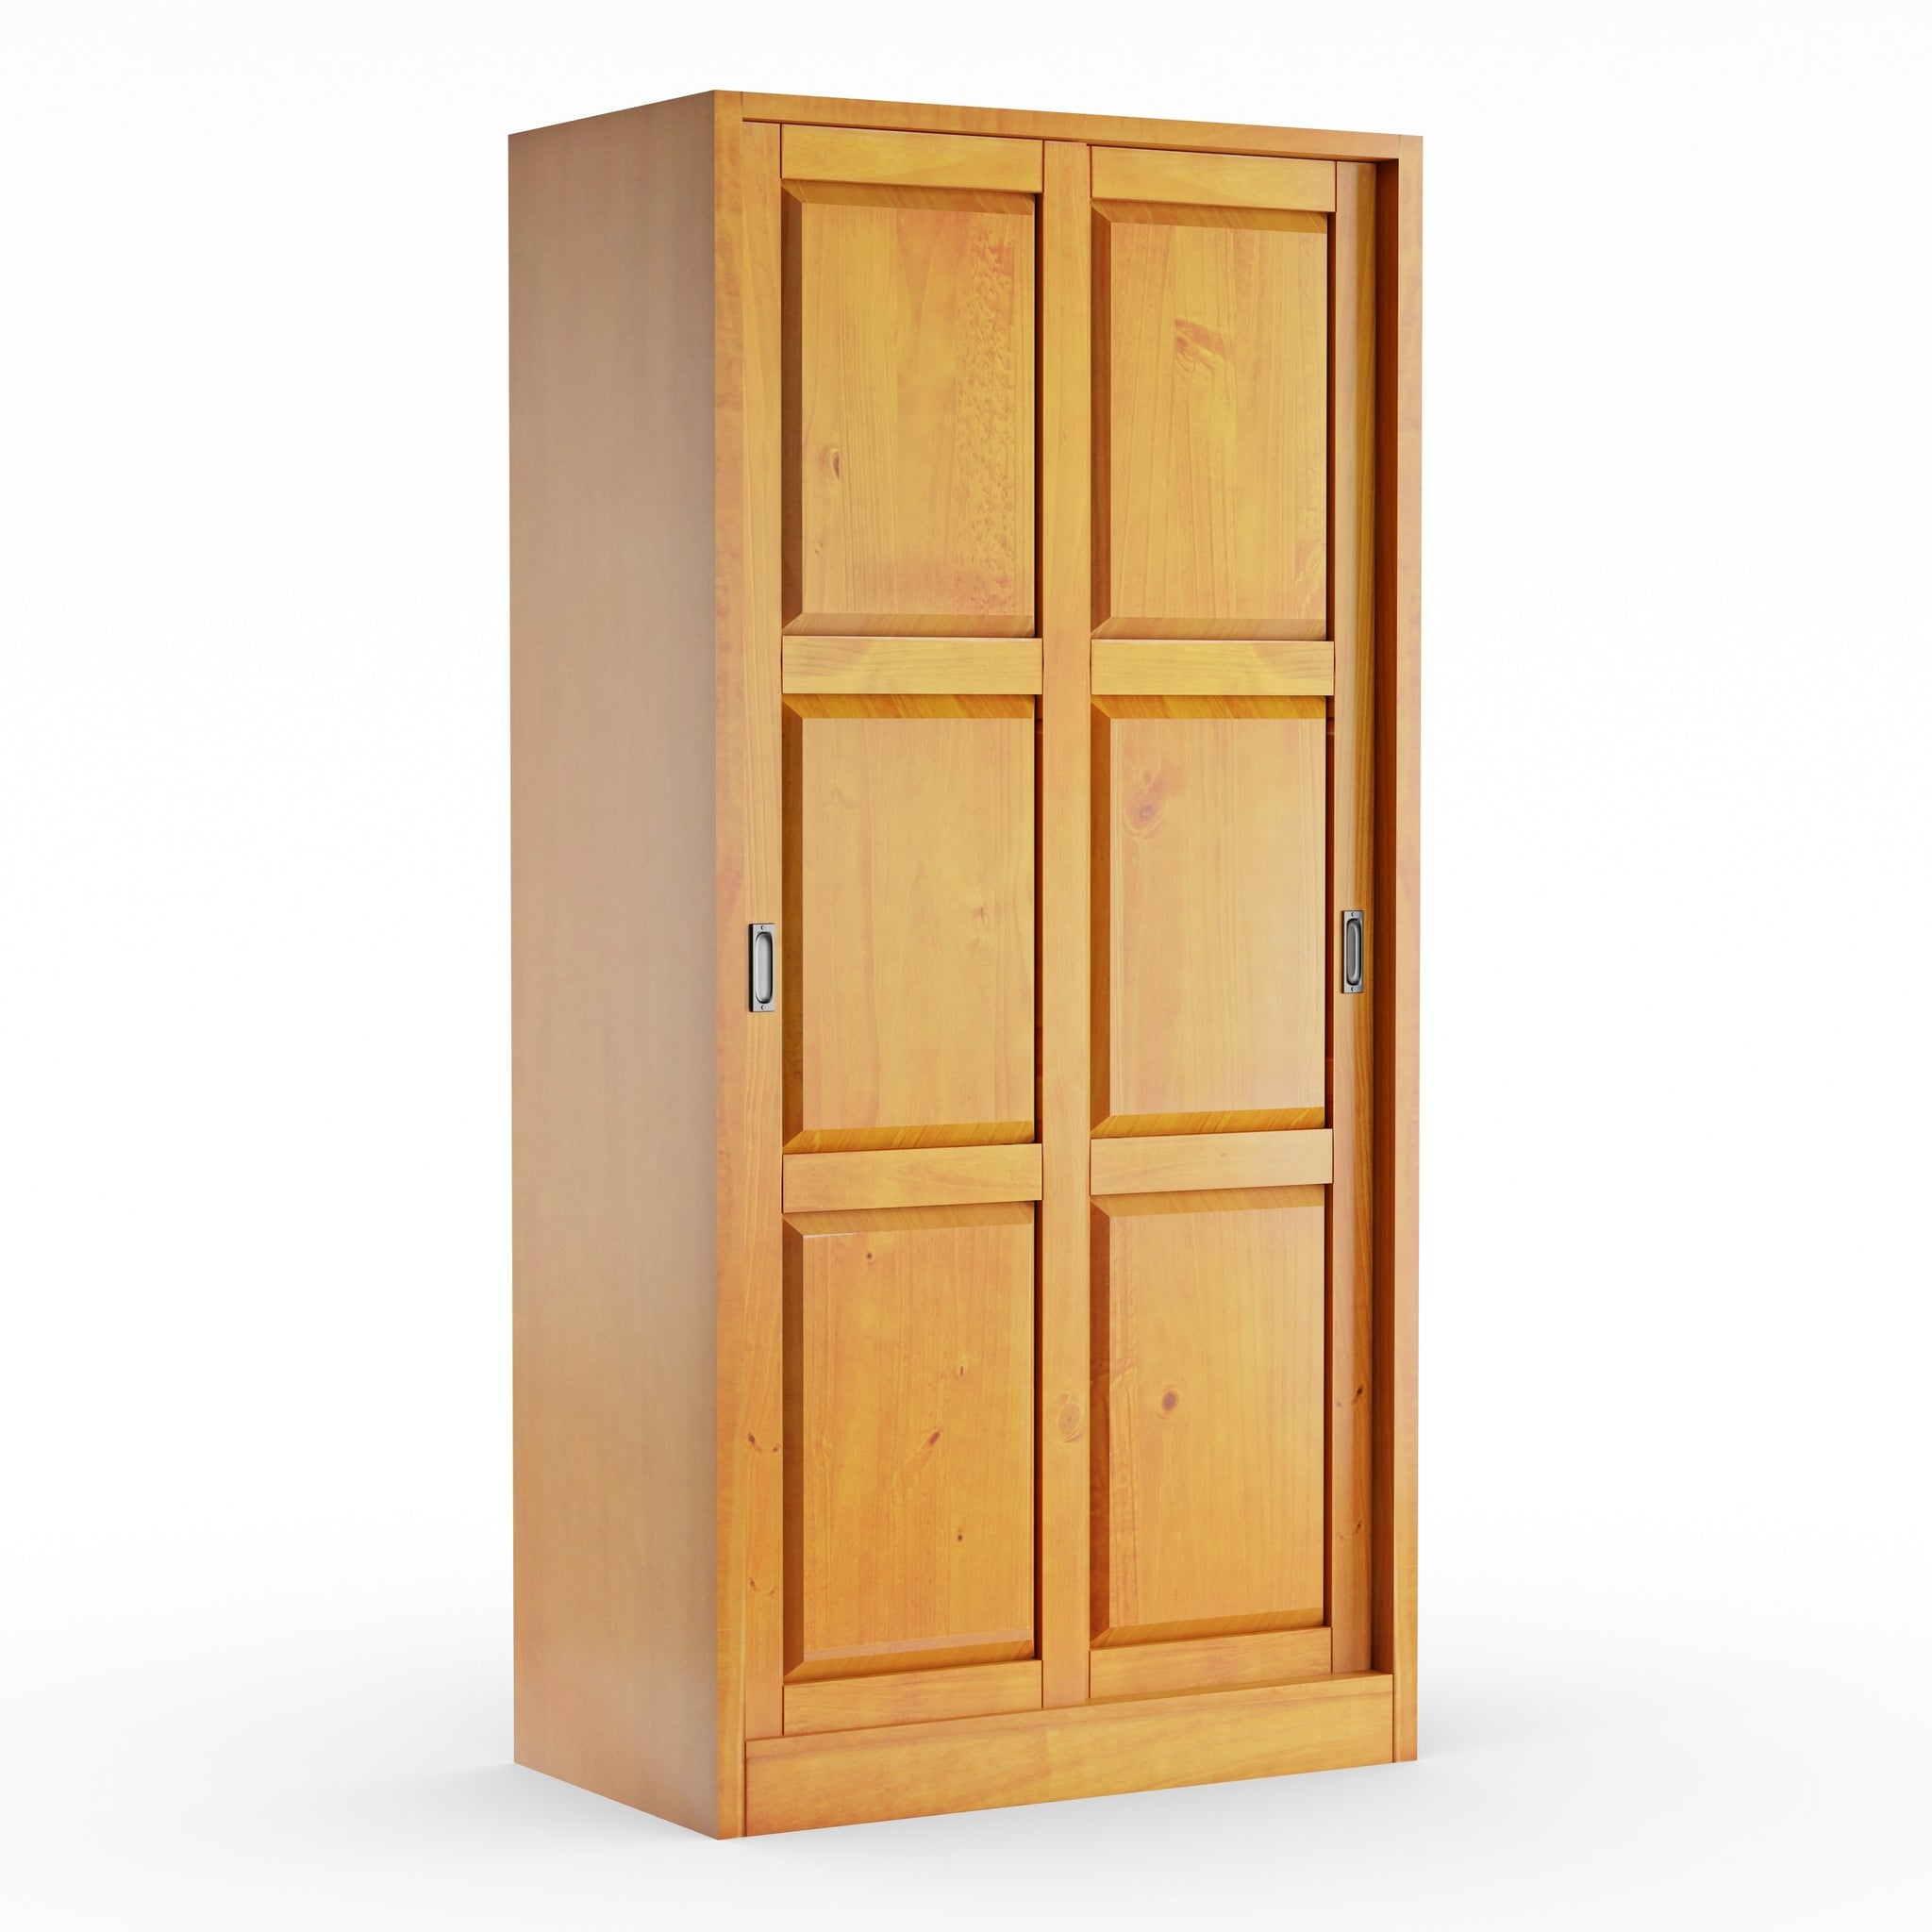 Solid Wood Wardrobe With Two Sliding Doors Handy